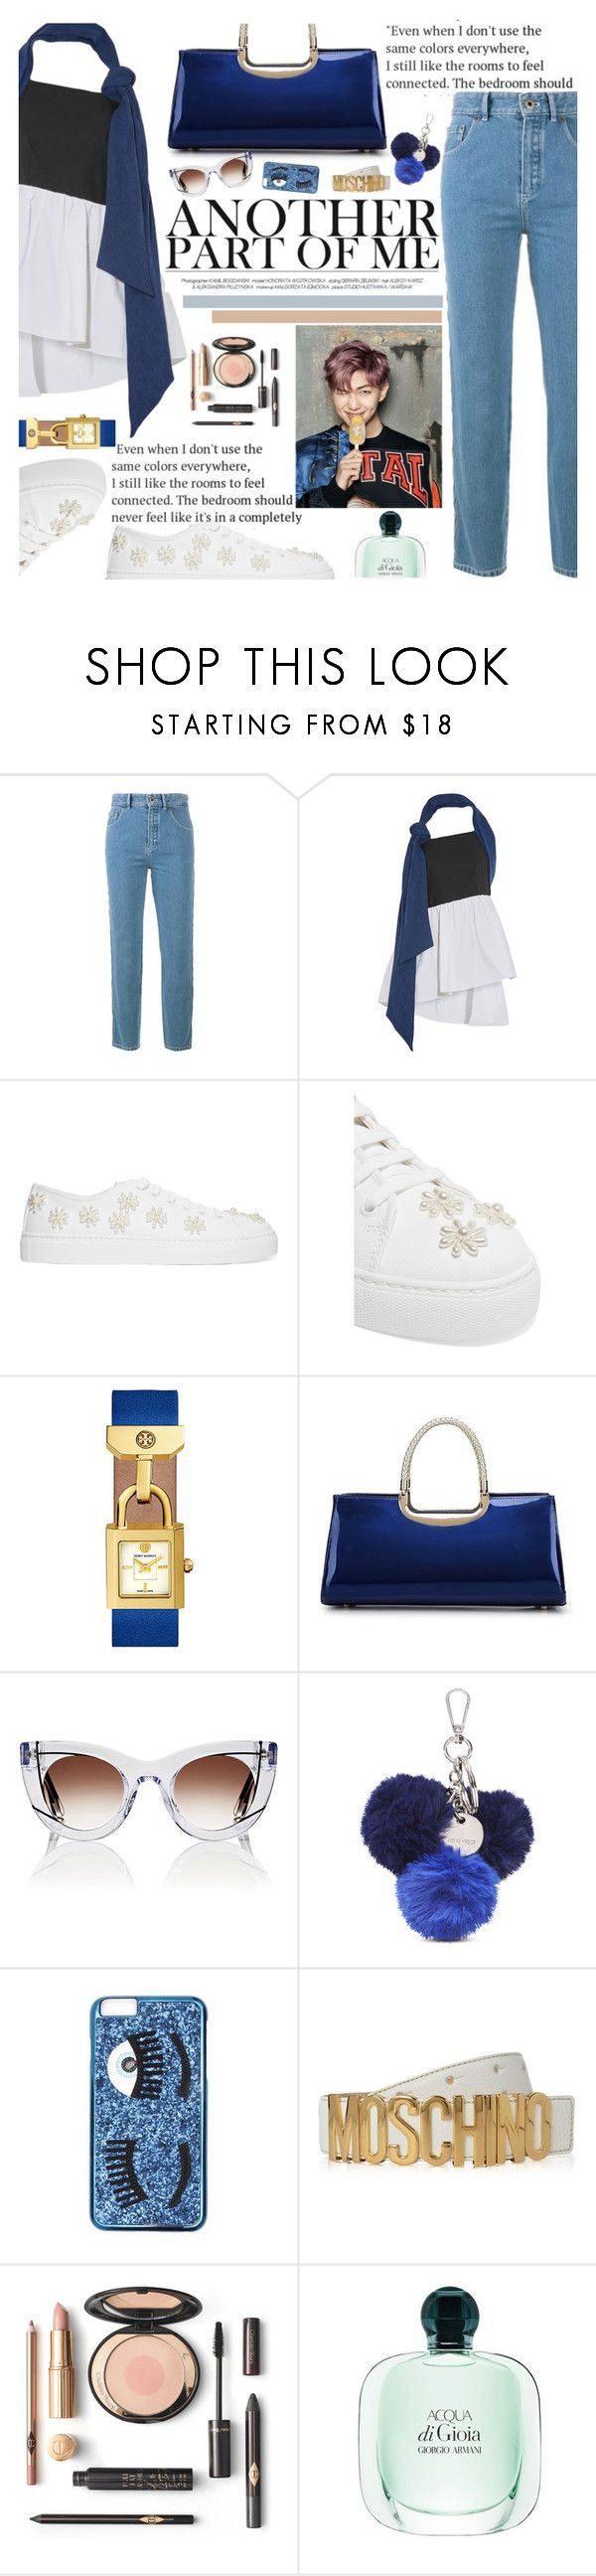 """Untitled #2291"" by anarita11 ❤ liked on Polyvore featuring Chloé, Isa Arfen, Simone Rocha, Tory Burch, Thierry Lasry, Nine West, Chiara Ferragni and Moschino"